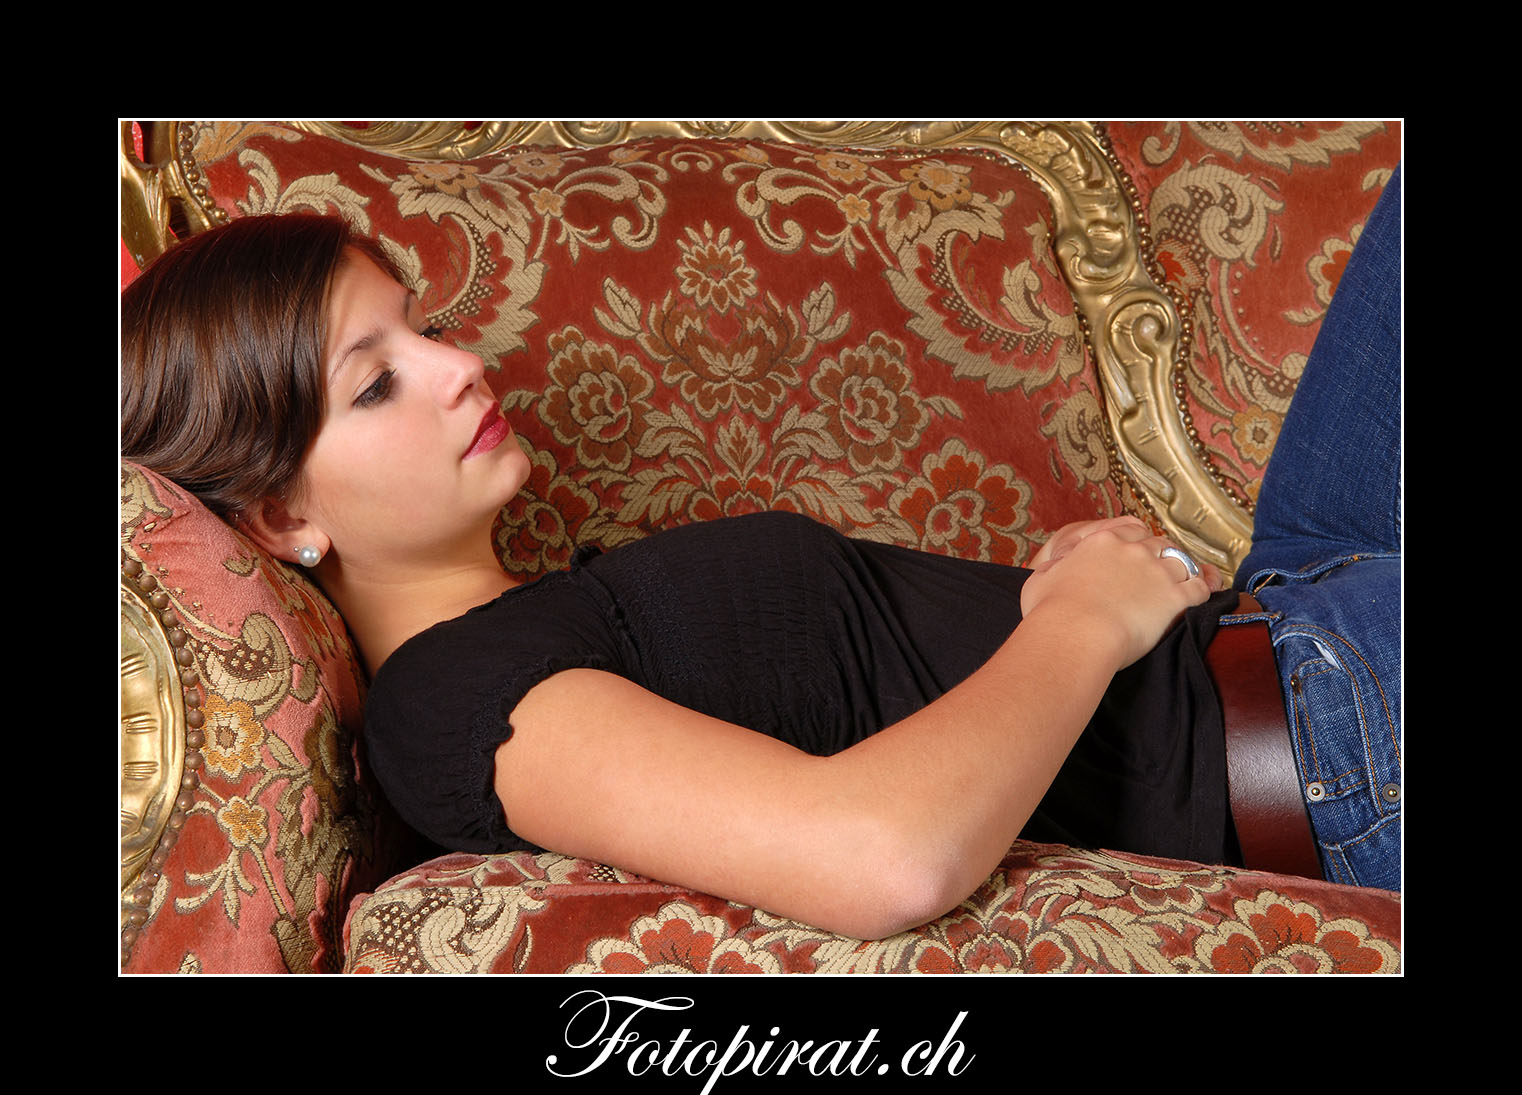 Fotoshooting, On Location, Barock, Modelagentur, Fotomodel,